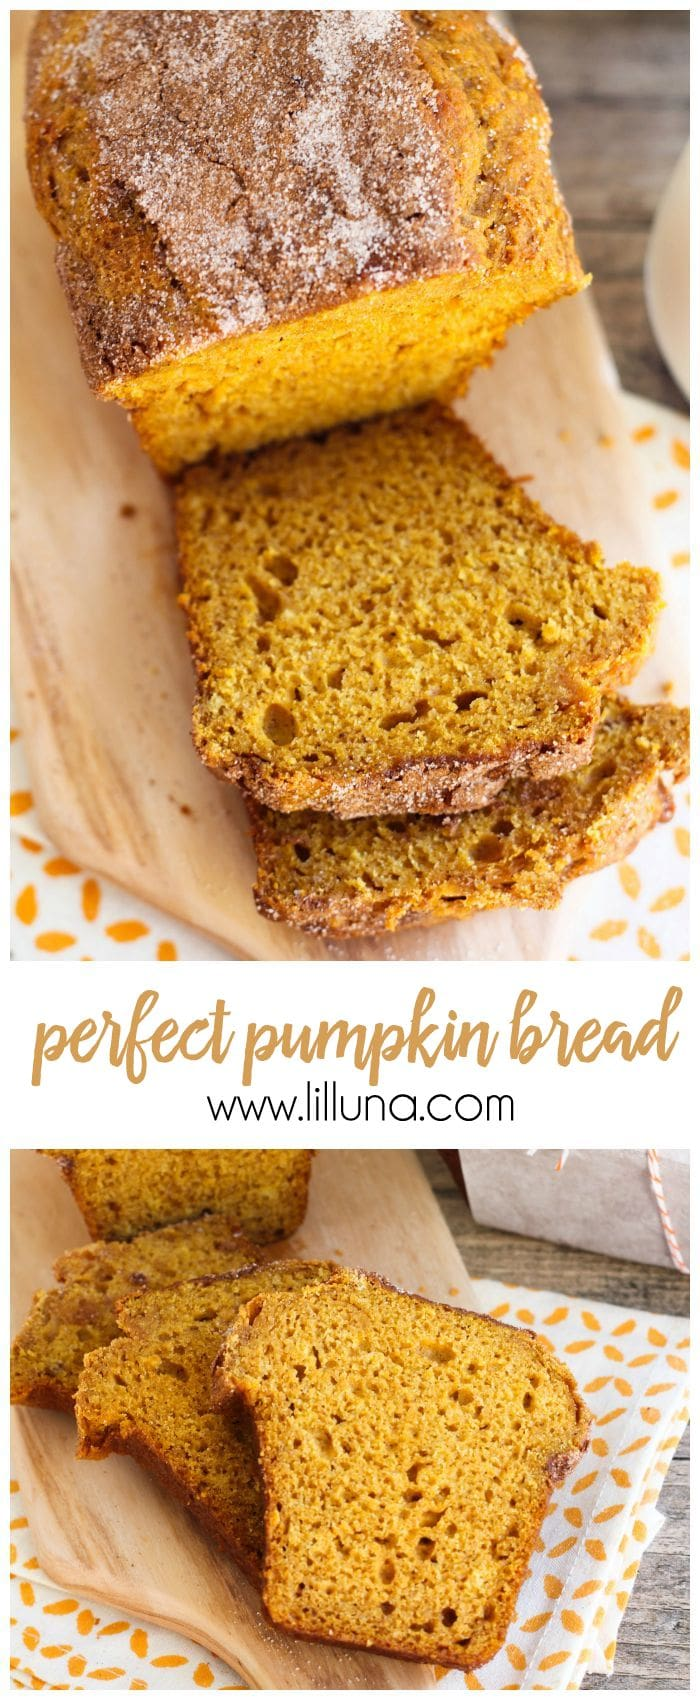 The most delicious Pumpkin Bread recipe filled with so much flavor. Best part?! No yeast involved! It's a favorite fall treat. { lilluna.com }